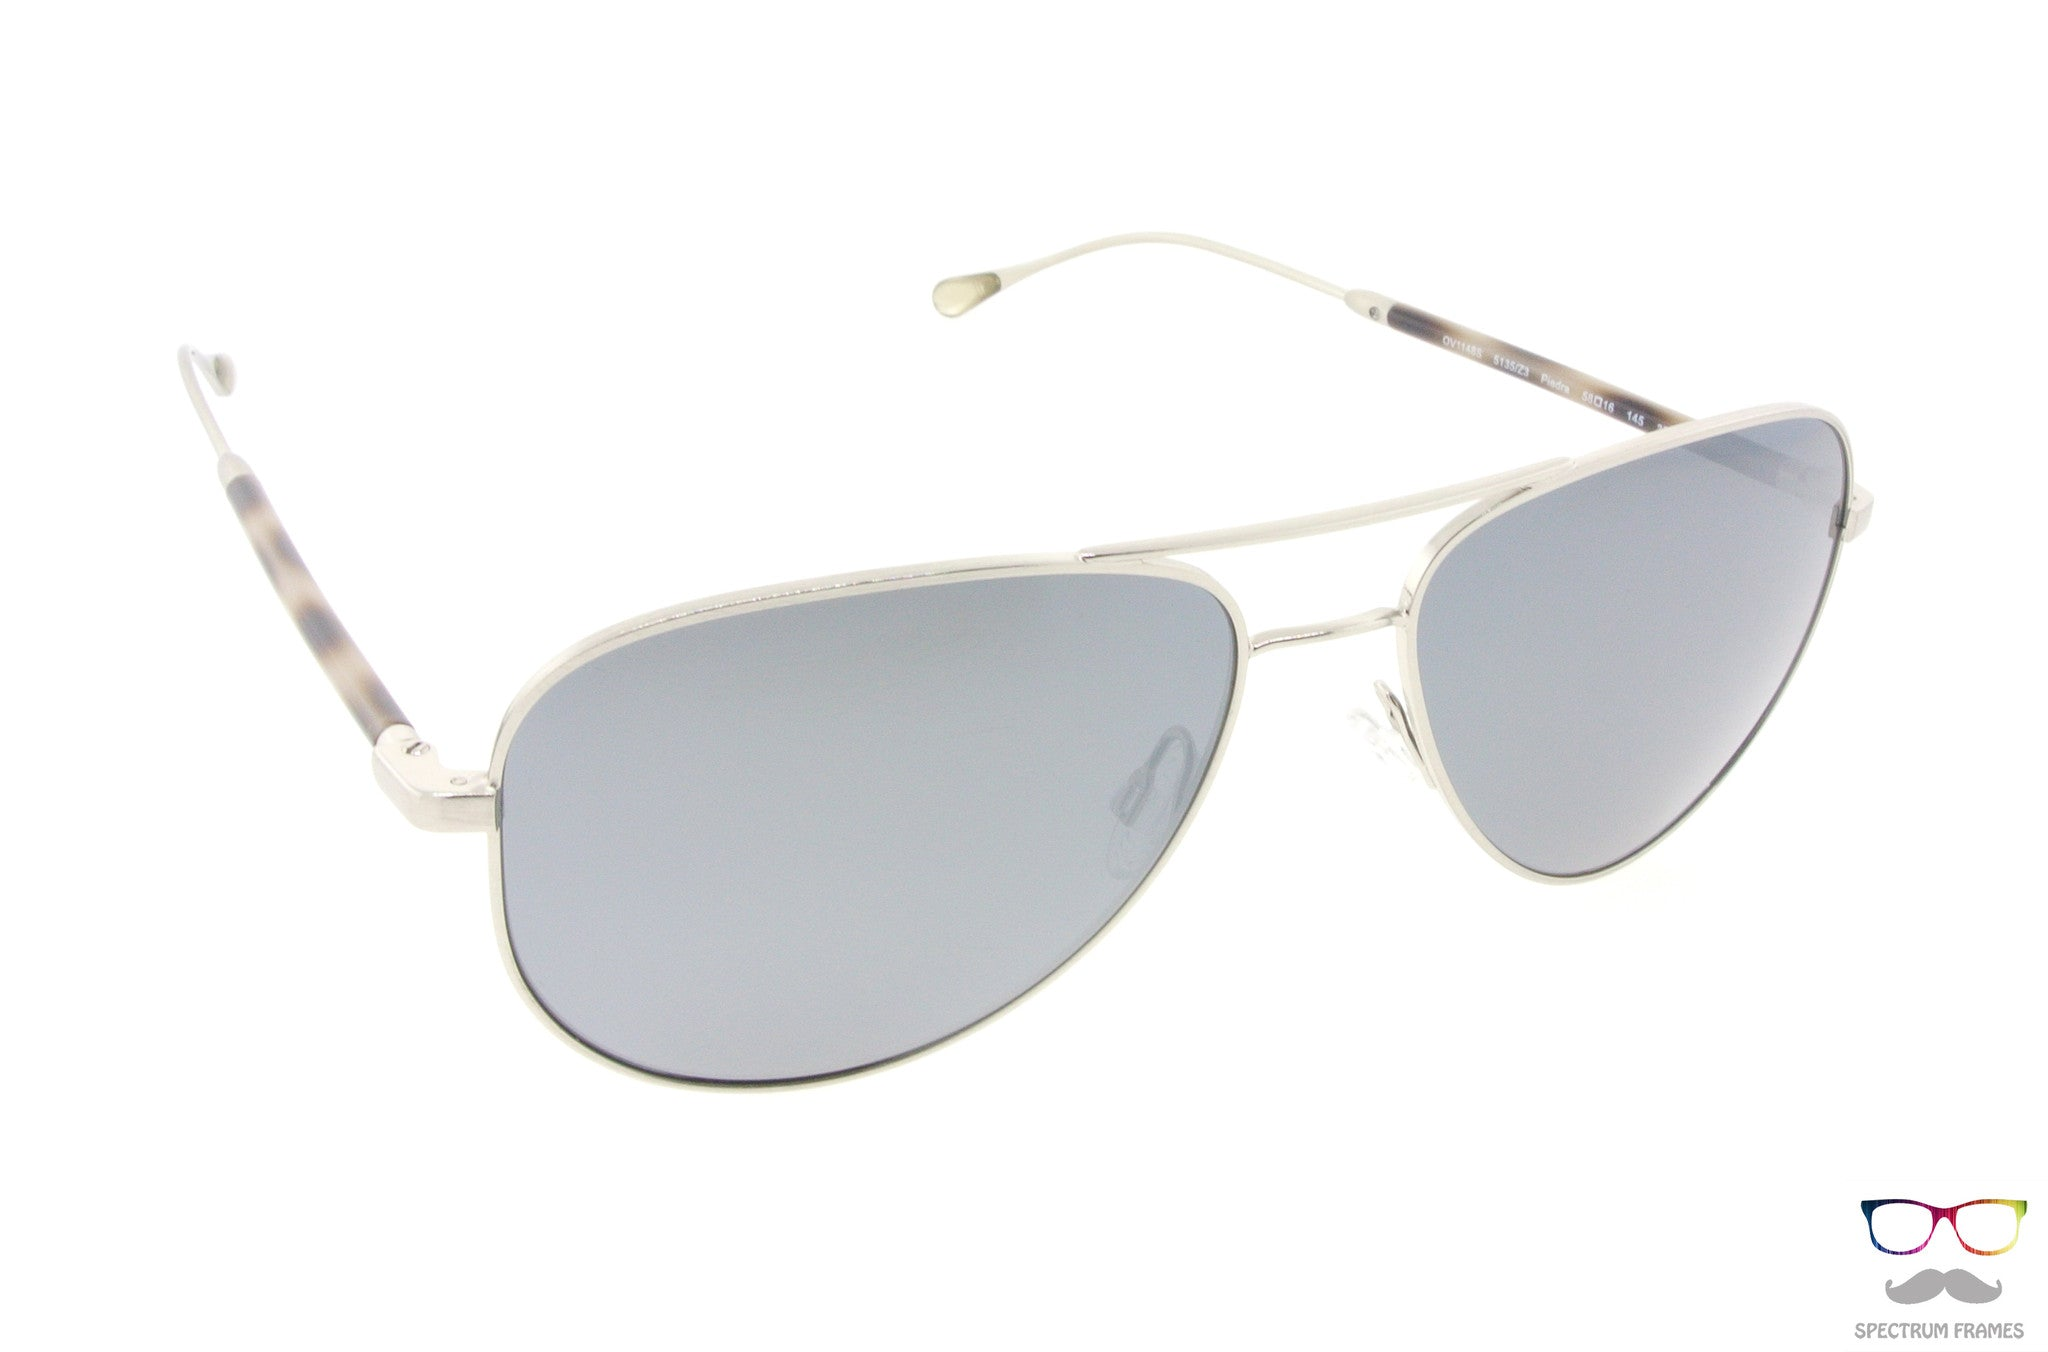 4e70bce8b8 Oliver Peoples Sunglasses Piedra 1148S 5135Z3 Silver with Black Polarized  Lenses